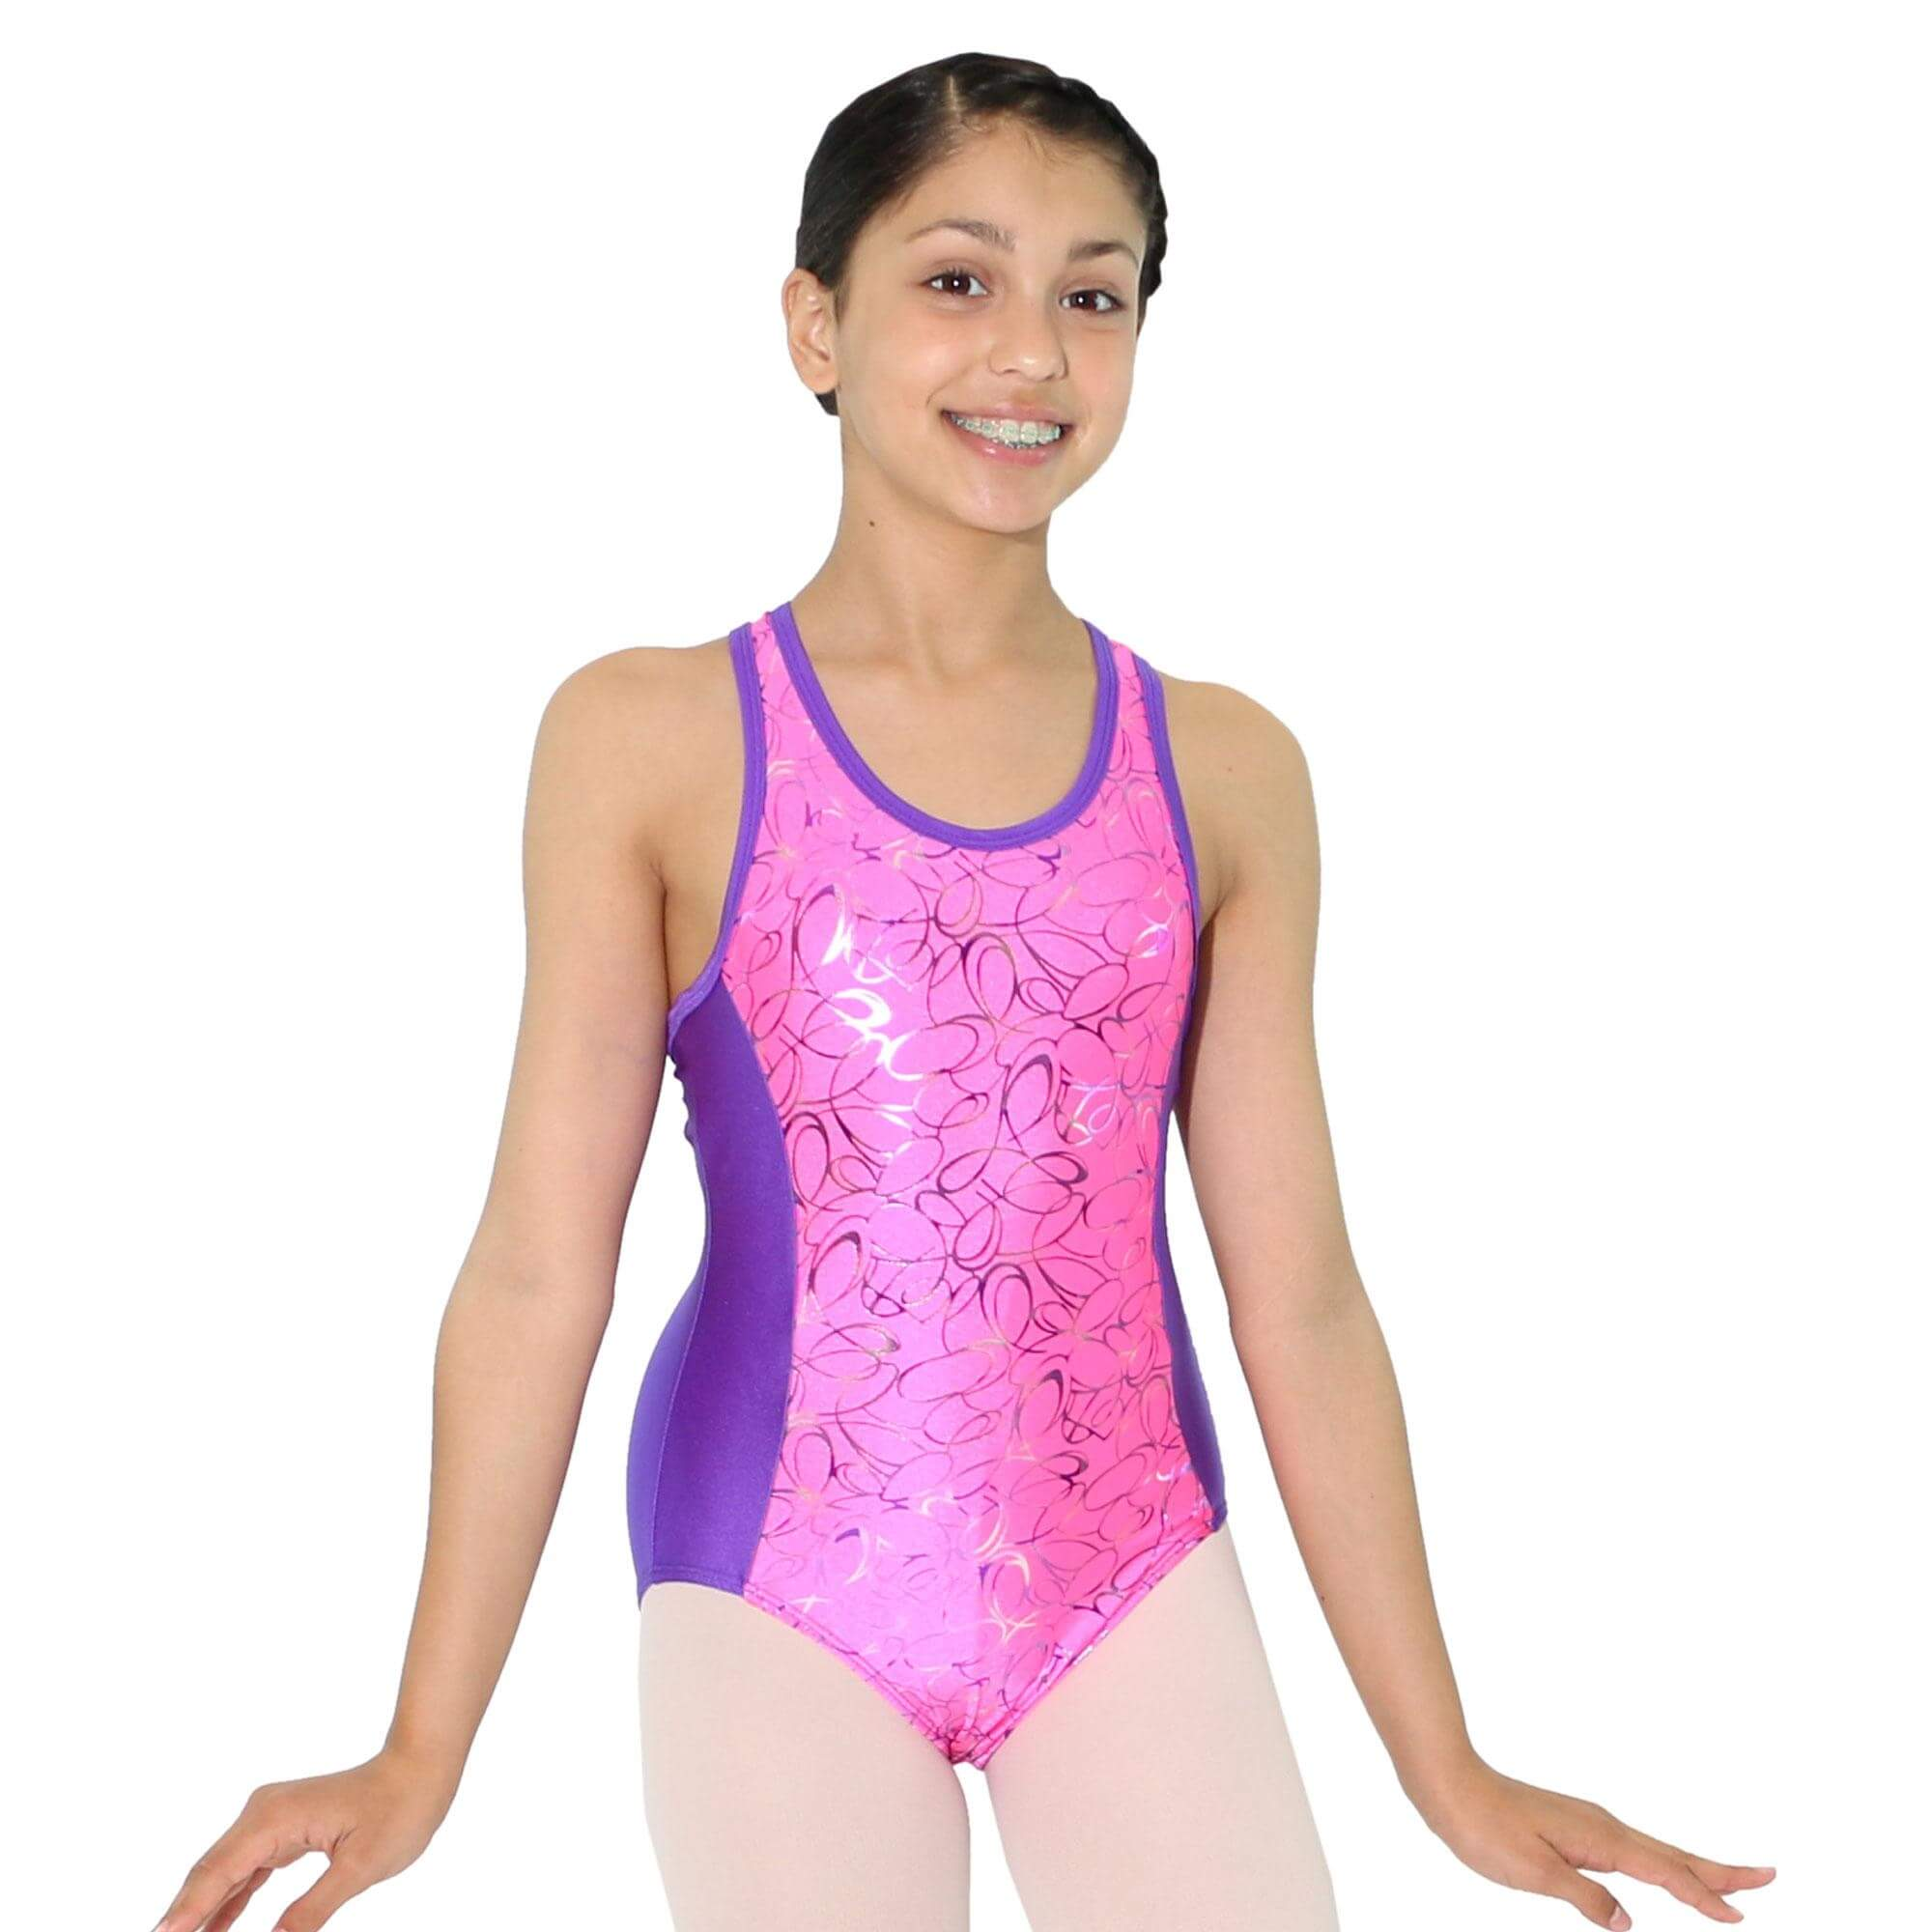 Reflectionz Oval Multi Leotard